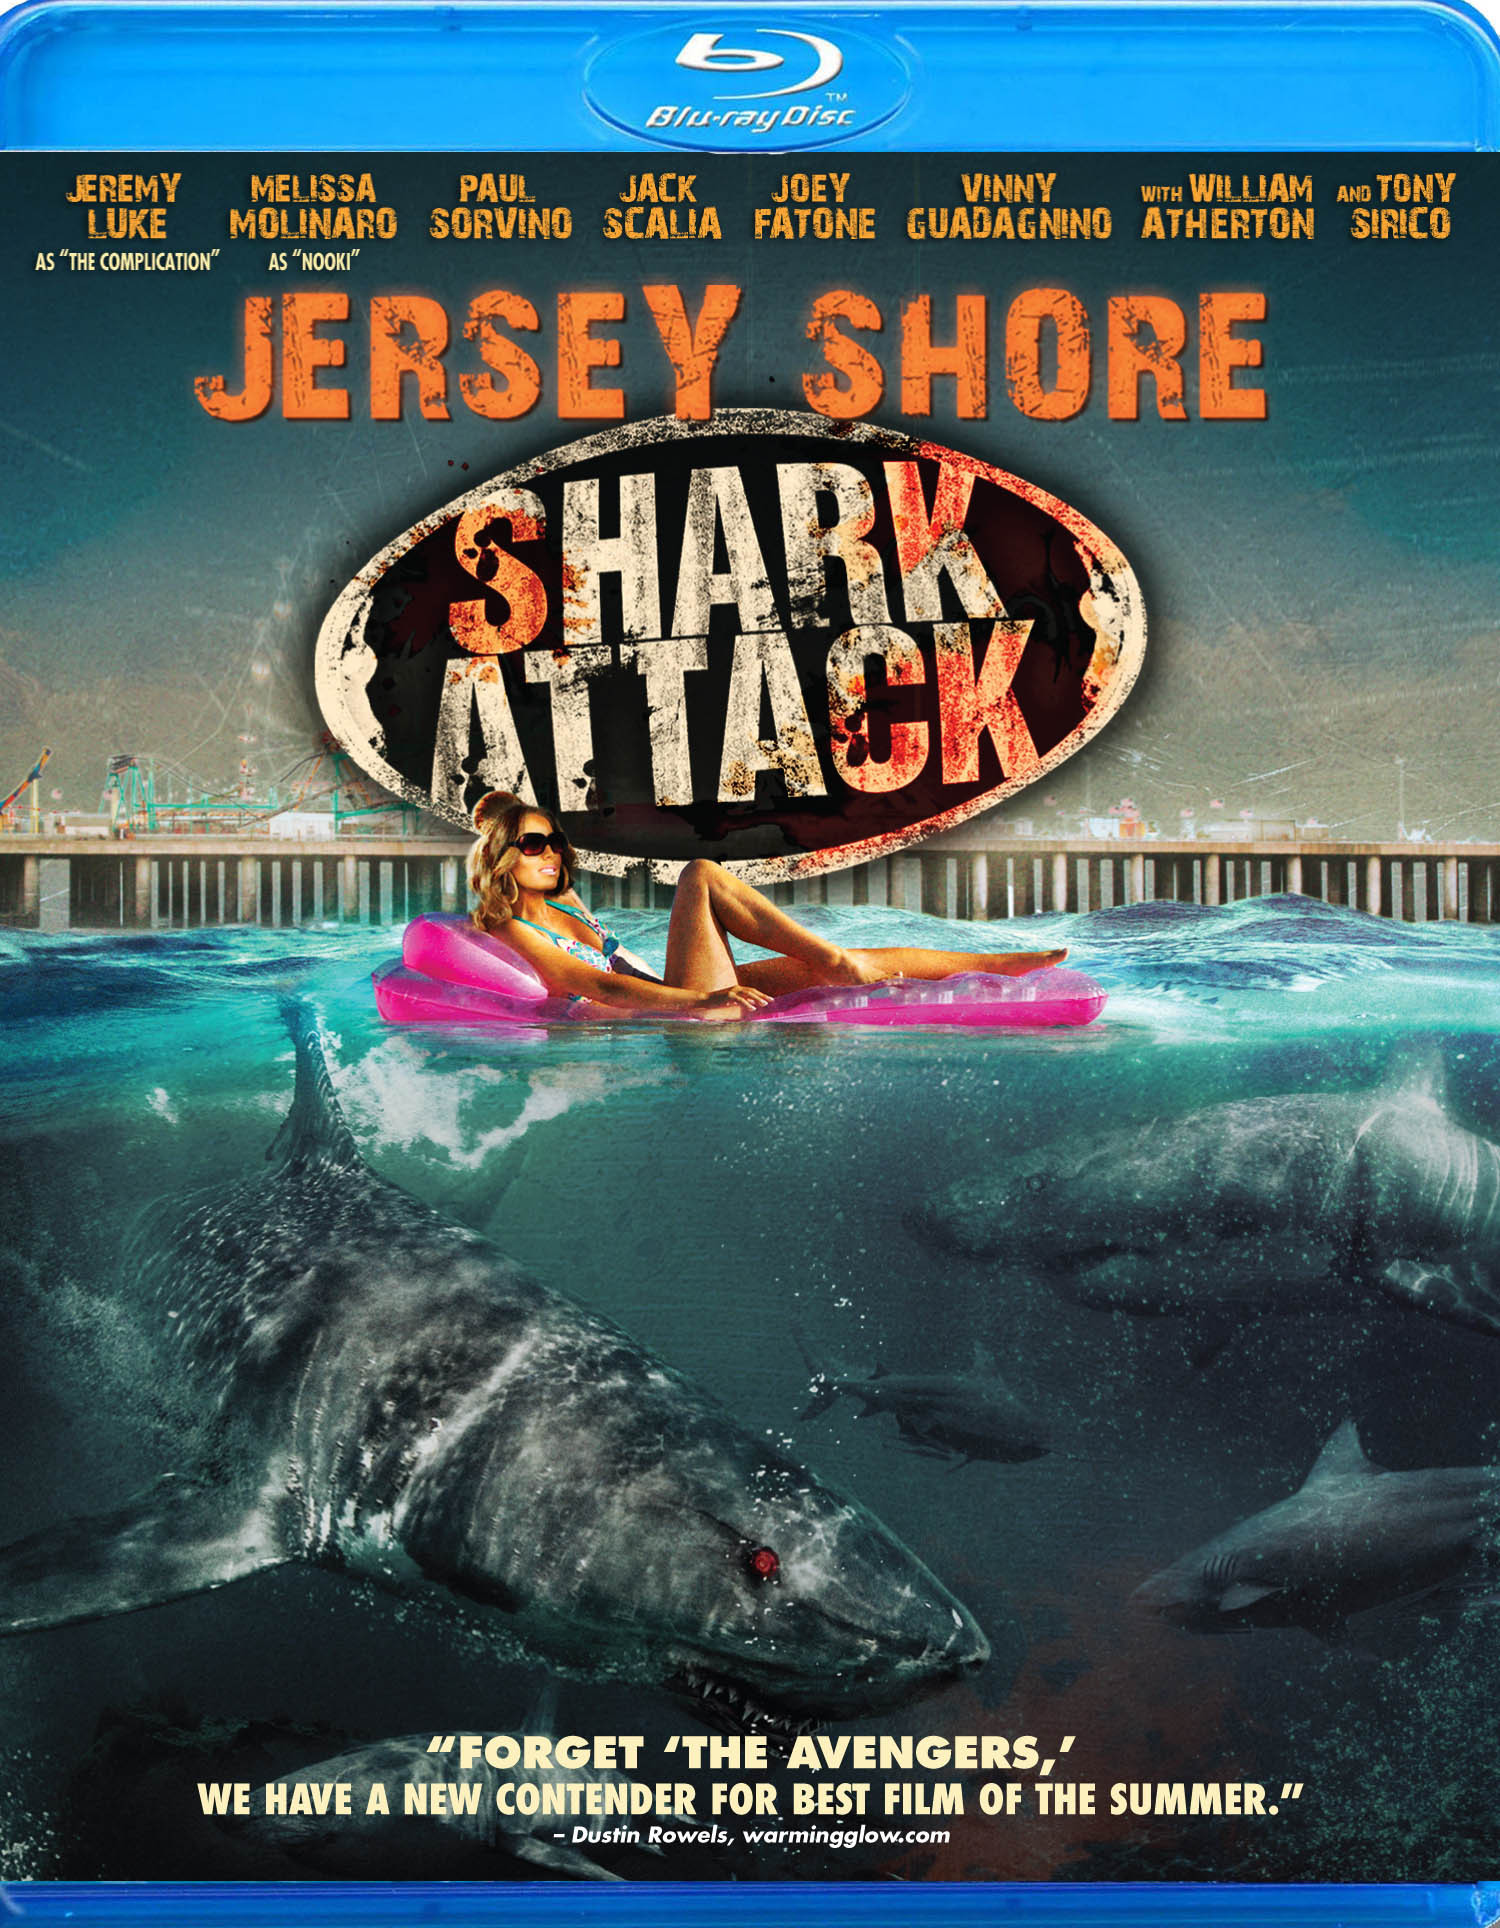 Jersey Shore Shark Attack (TV Movie 2012) - IMDb